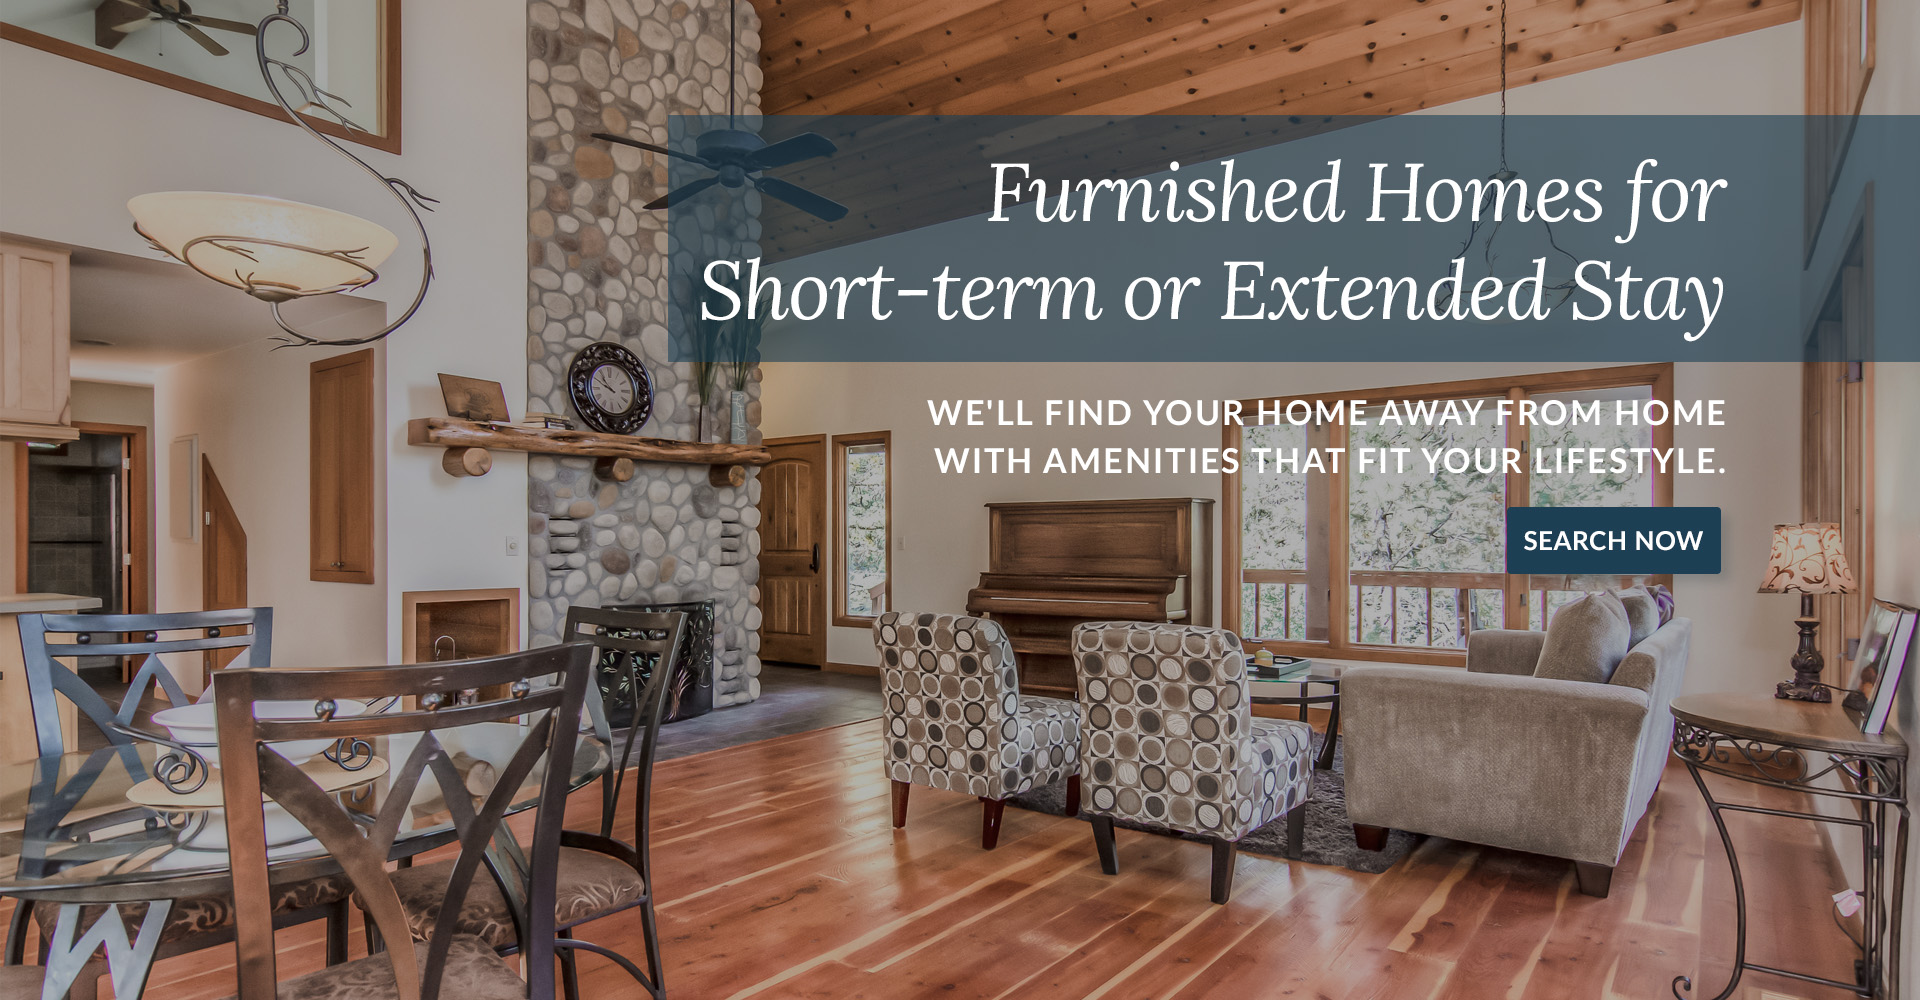 Furnished rentals for 30 days or more